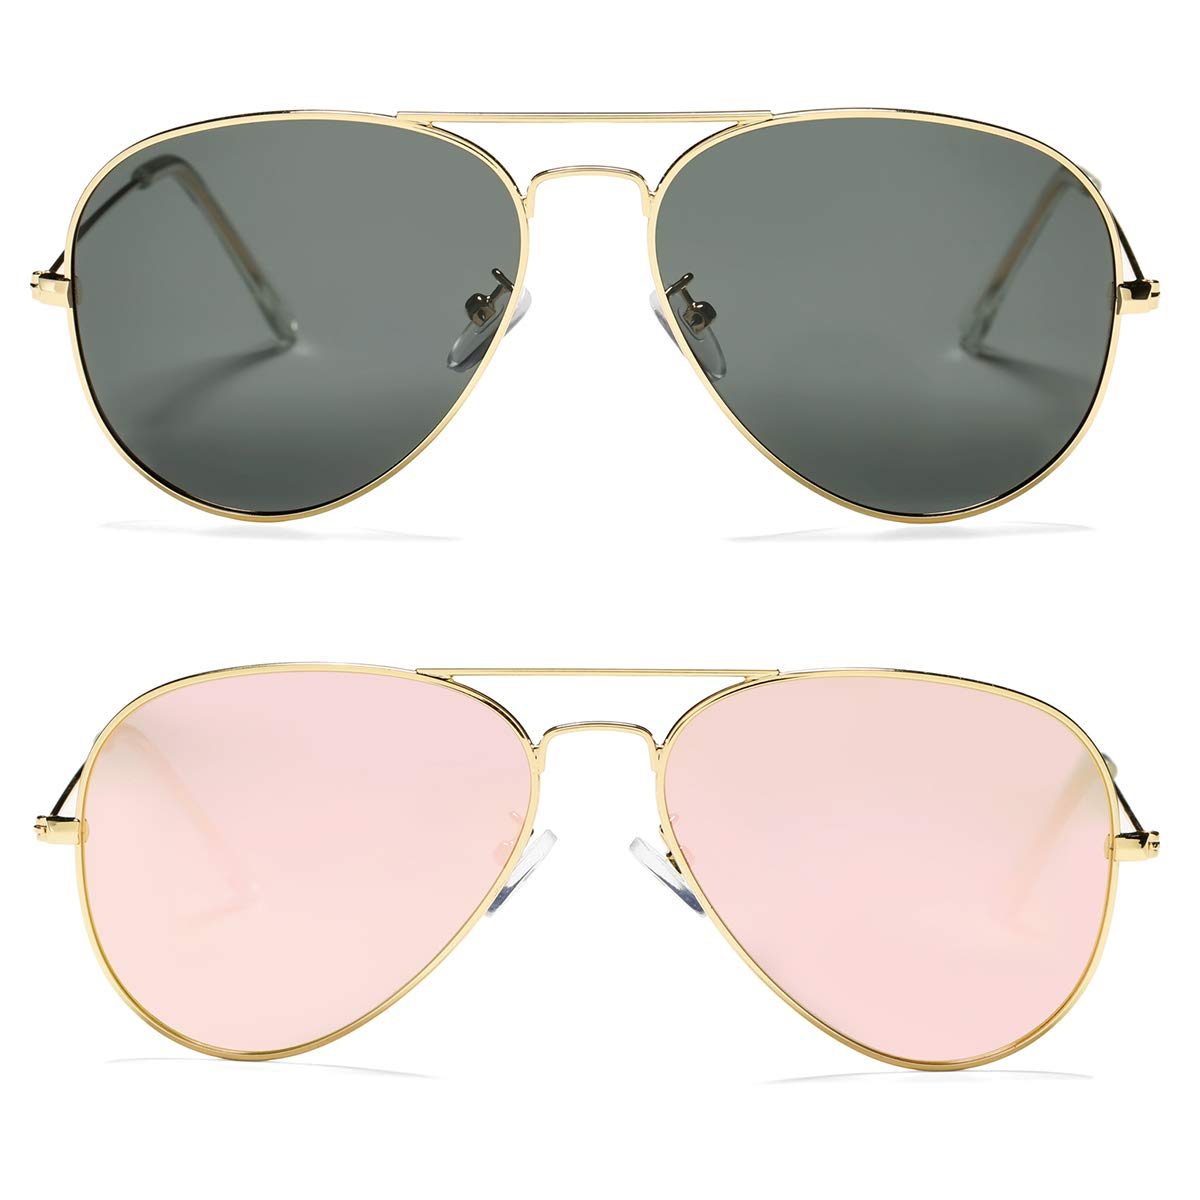 Pro Acme Classic Polarized Aviator Sunglasses for Men and Women UV400 Protection (2 Pairs) Gold Frame/Black Lens + Gold Frame/Pink Mirrored Lens by Pro Acme